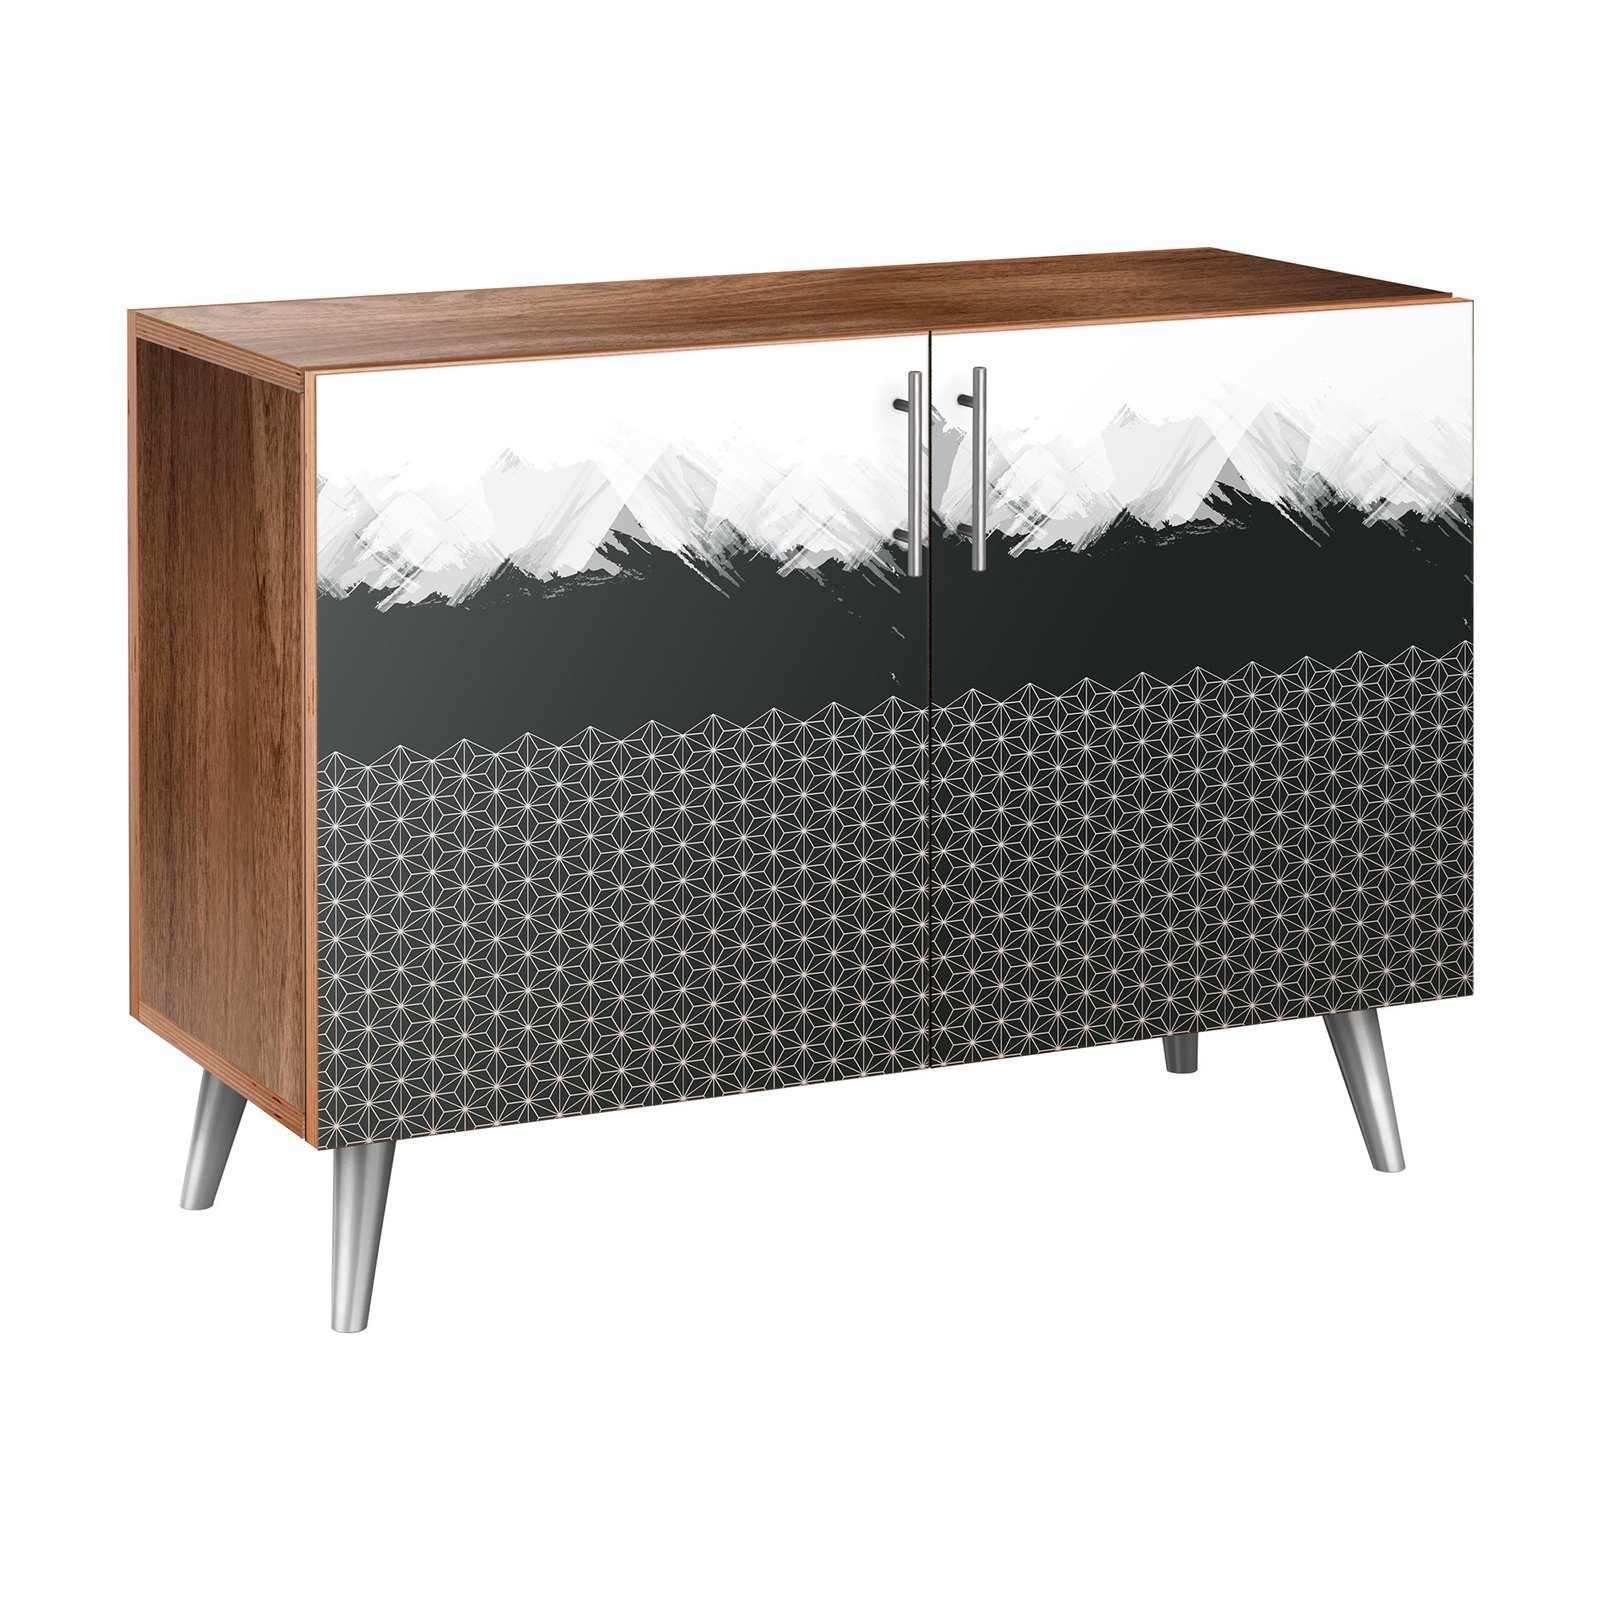 Nyekoncept Starlight Abstraction Flare Credenza | Products regarding Line Geo Credenzas (Image 23 of 30)